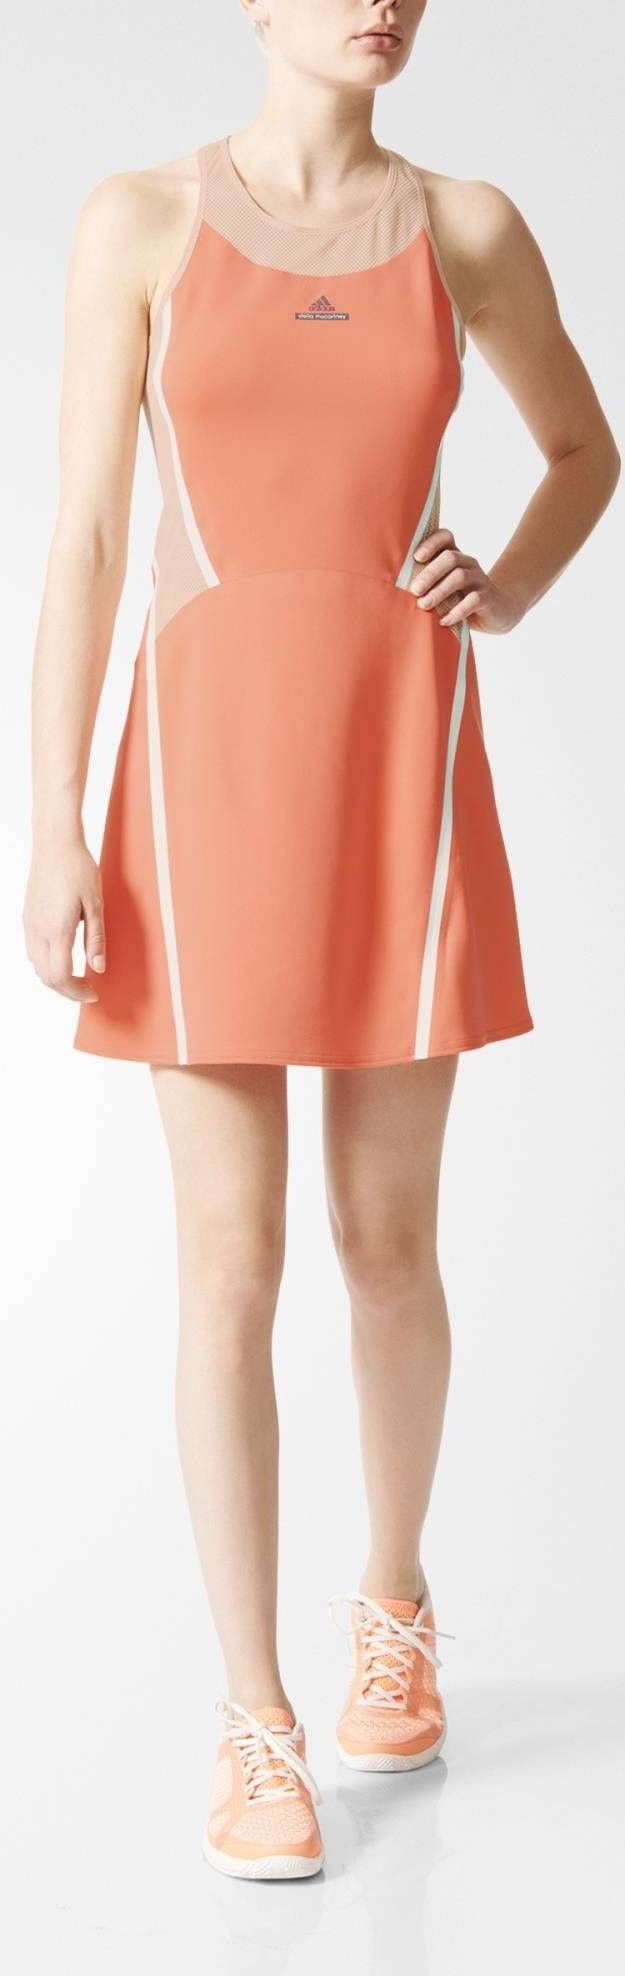 adidas Stella McCartney Pink Tennis Dress